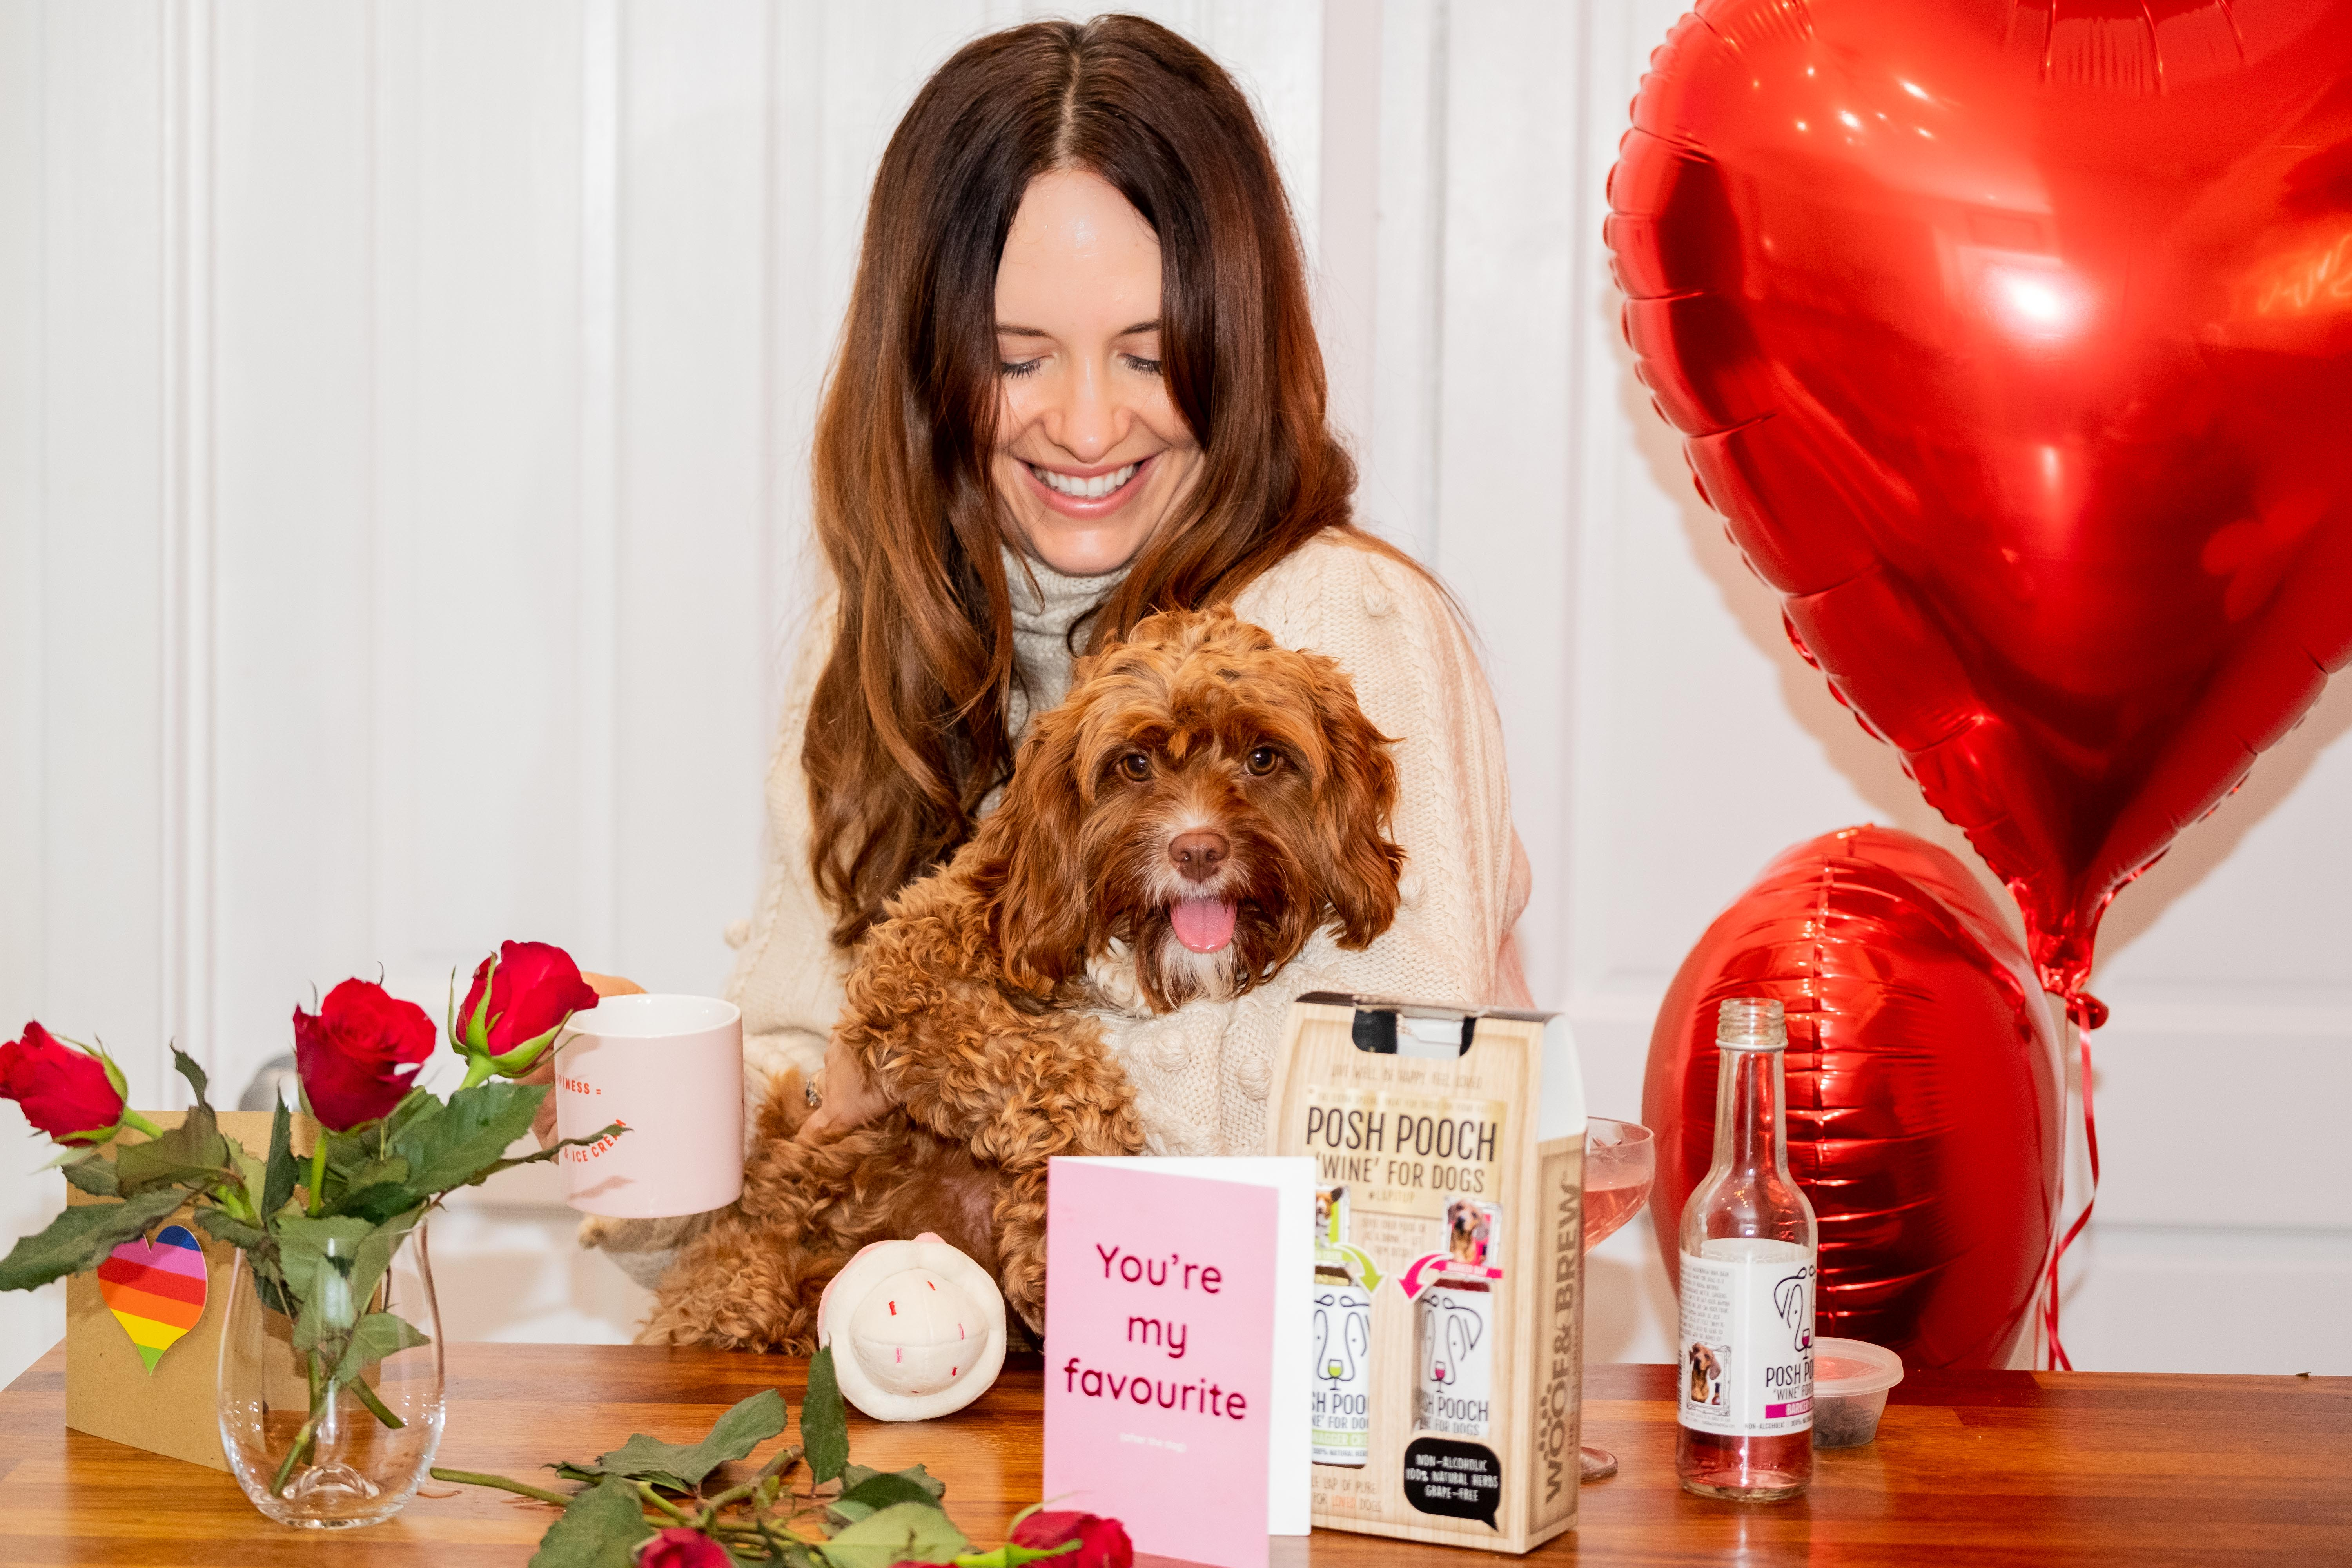 Above: John Lewis & Partners is among the retailers to have flagged up pet-related sales this Valentine's Day.